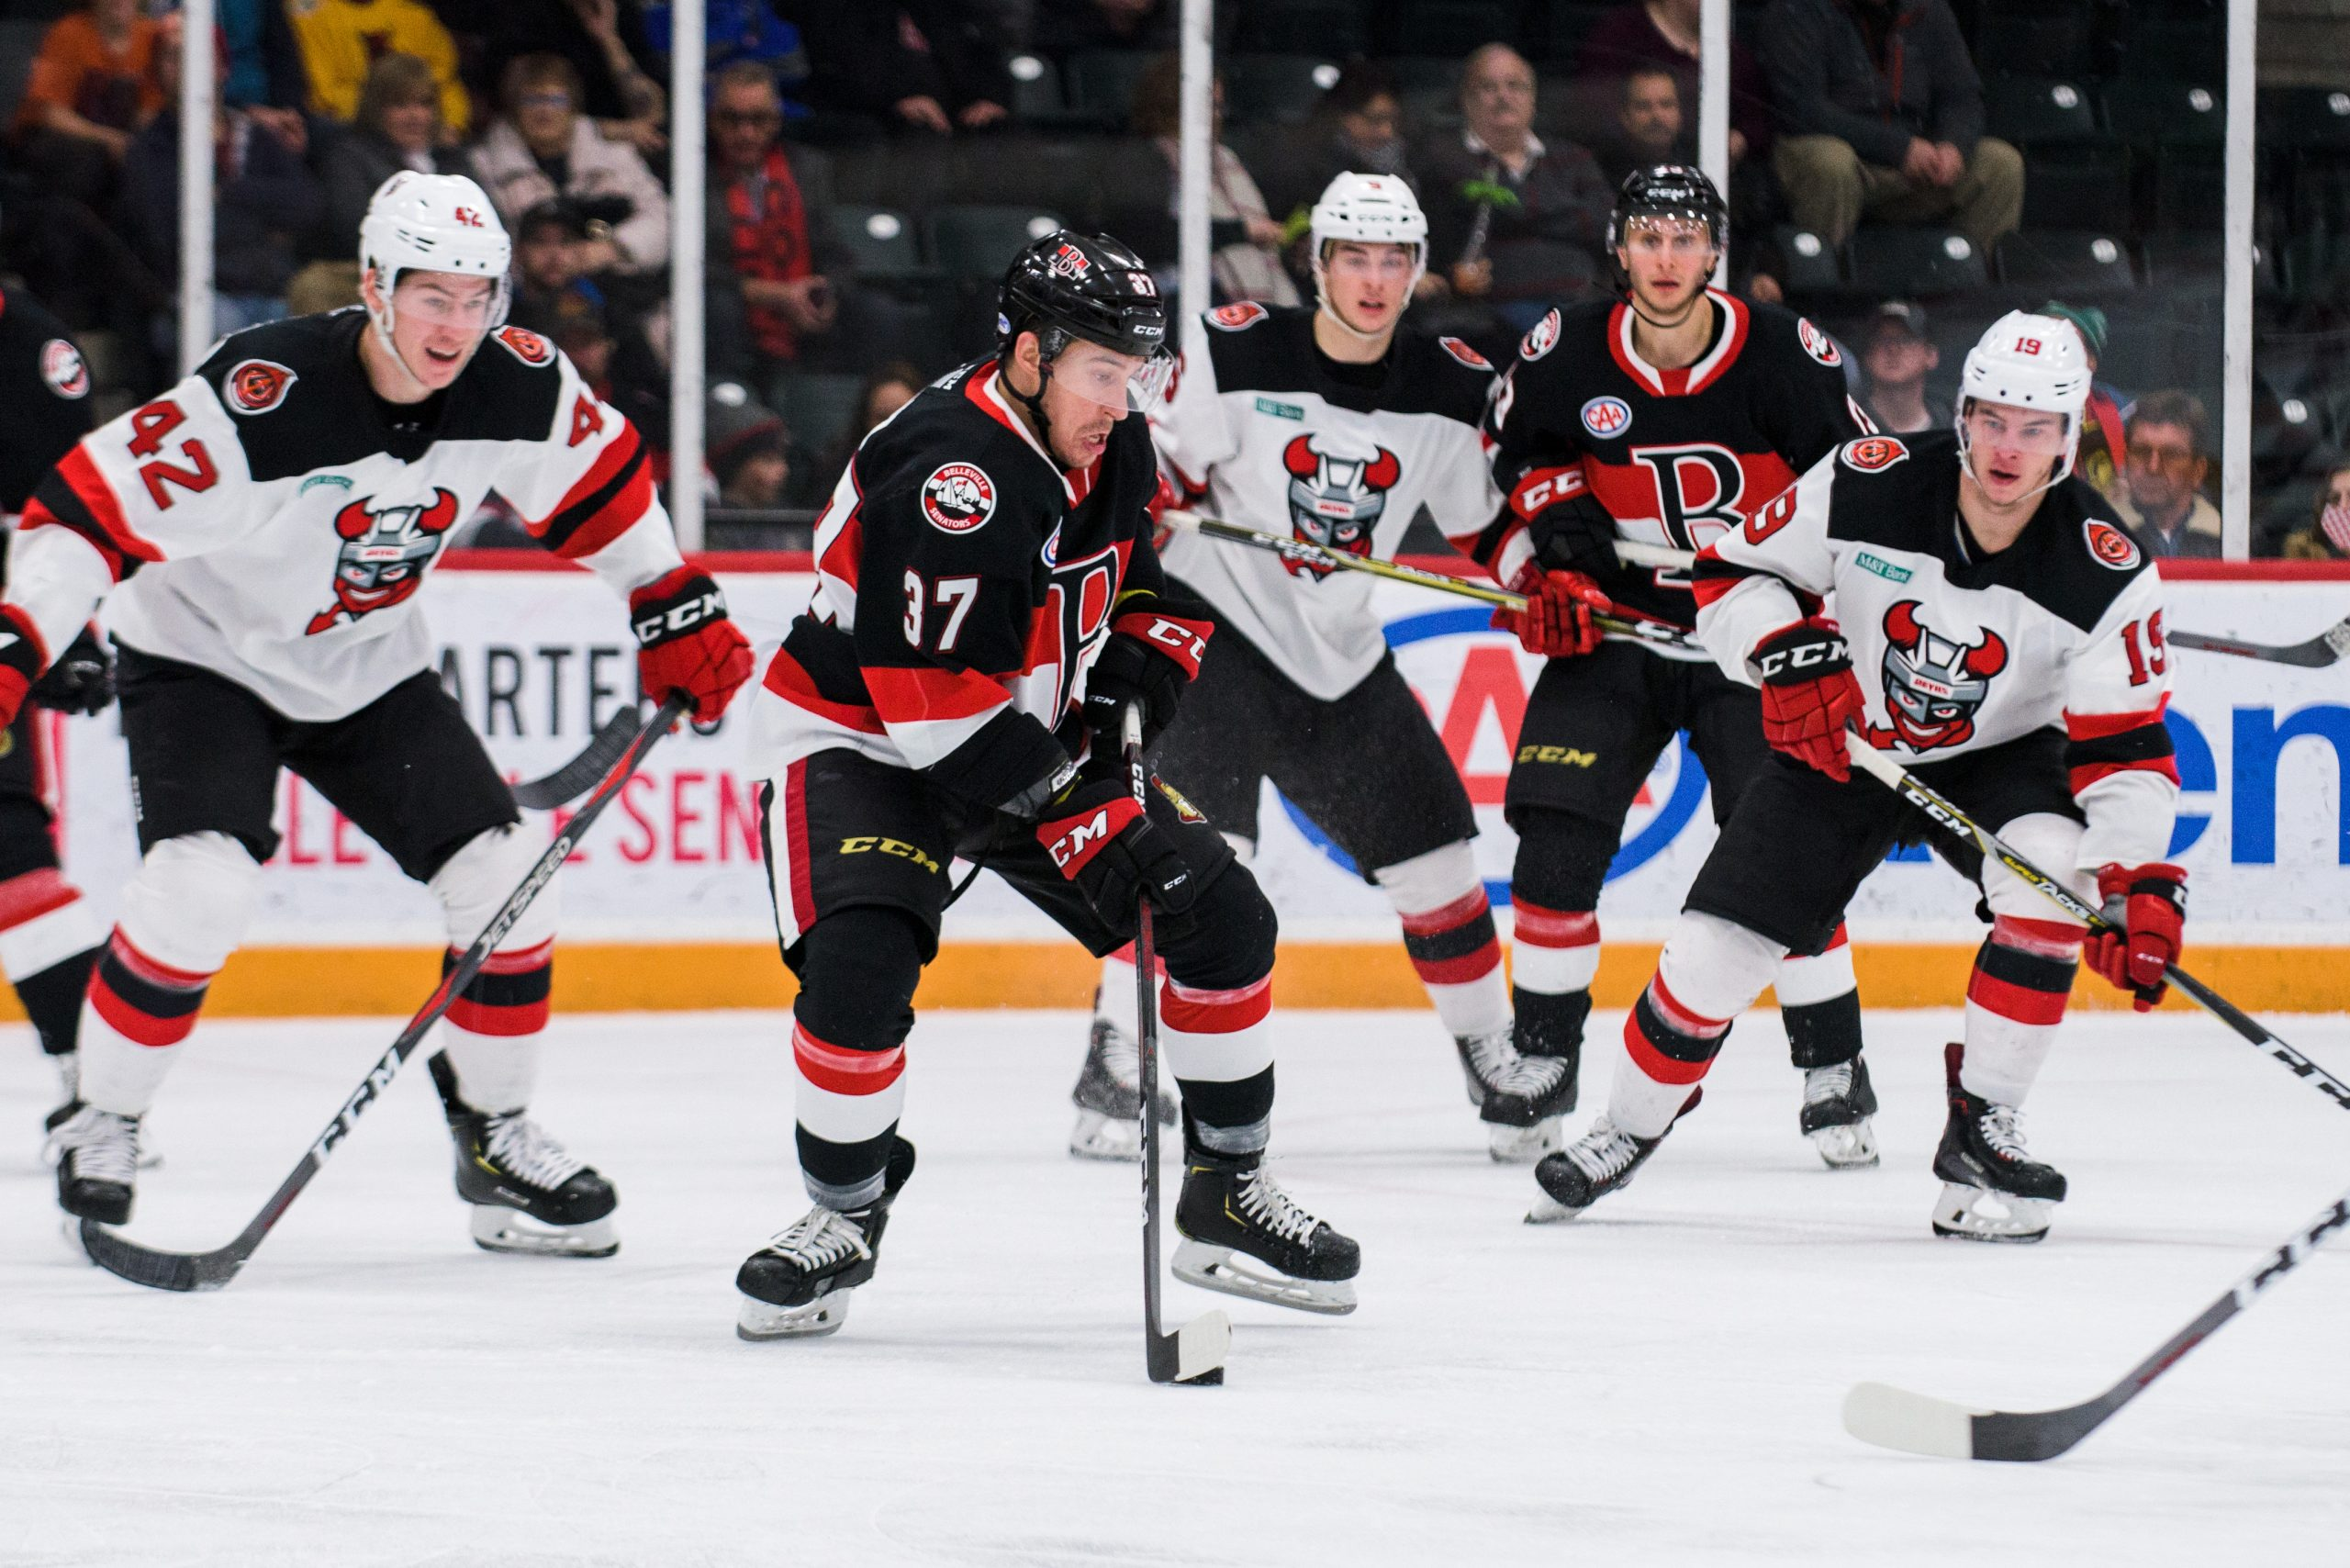 B-Sens streaking into the new year after beating Devils